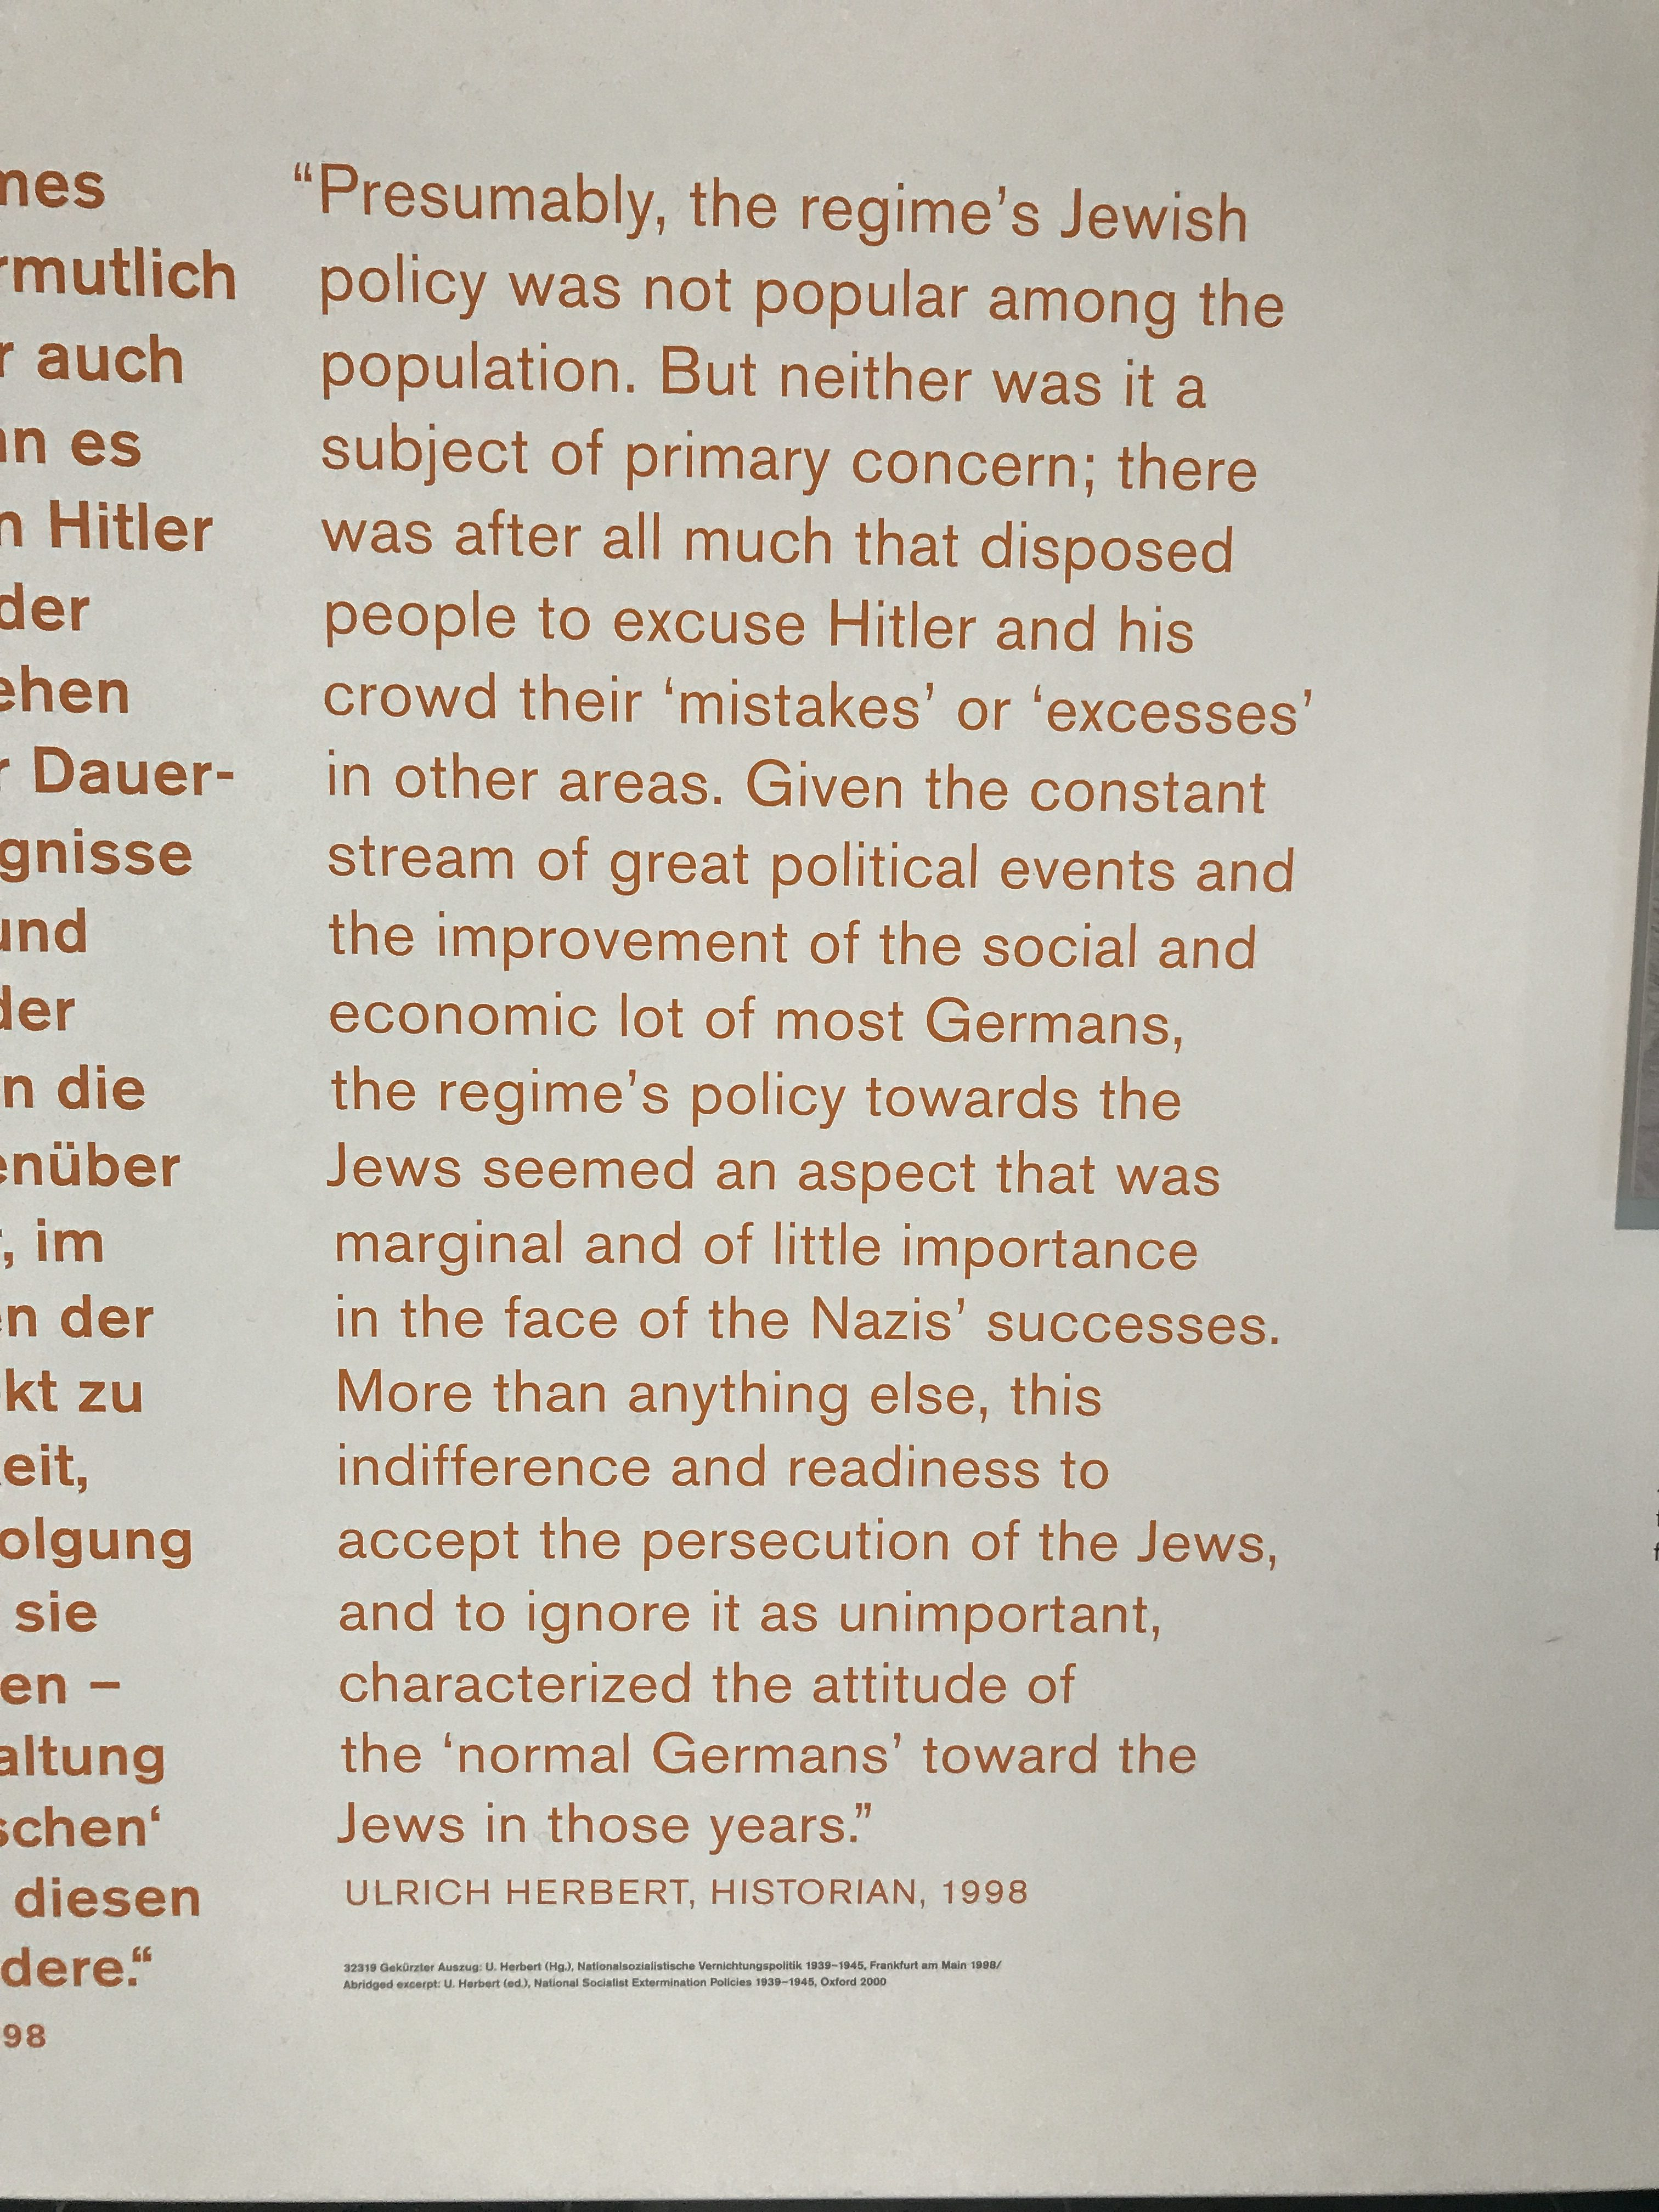 An important quote from the Topography of Terror that all Americans should think about.